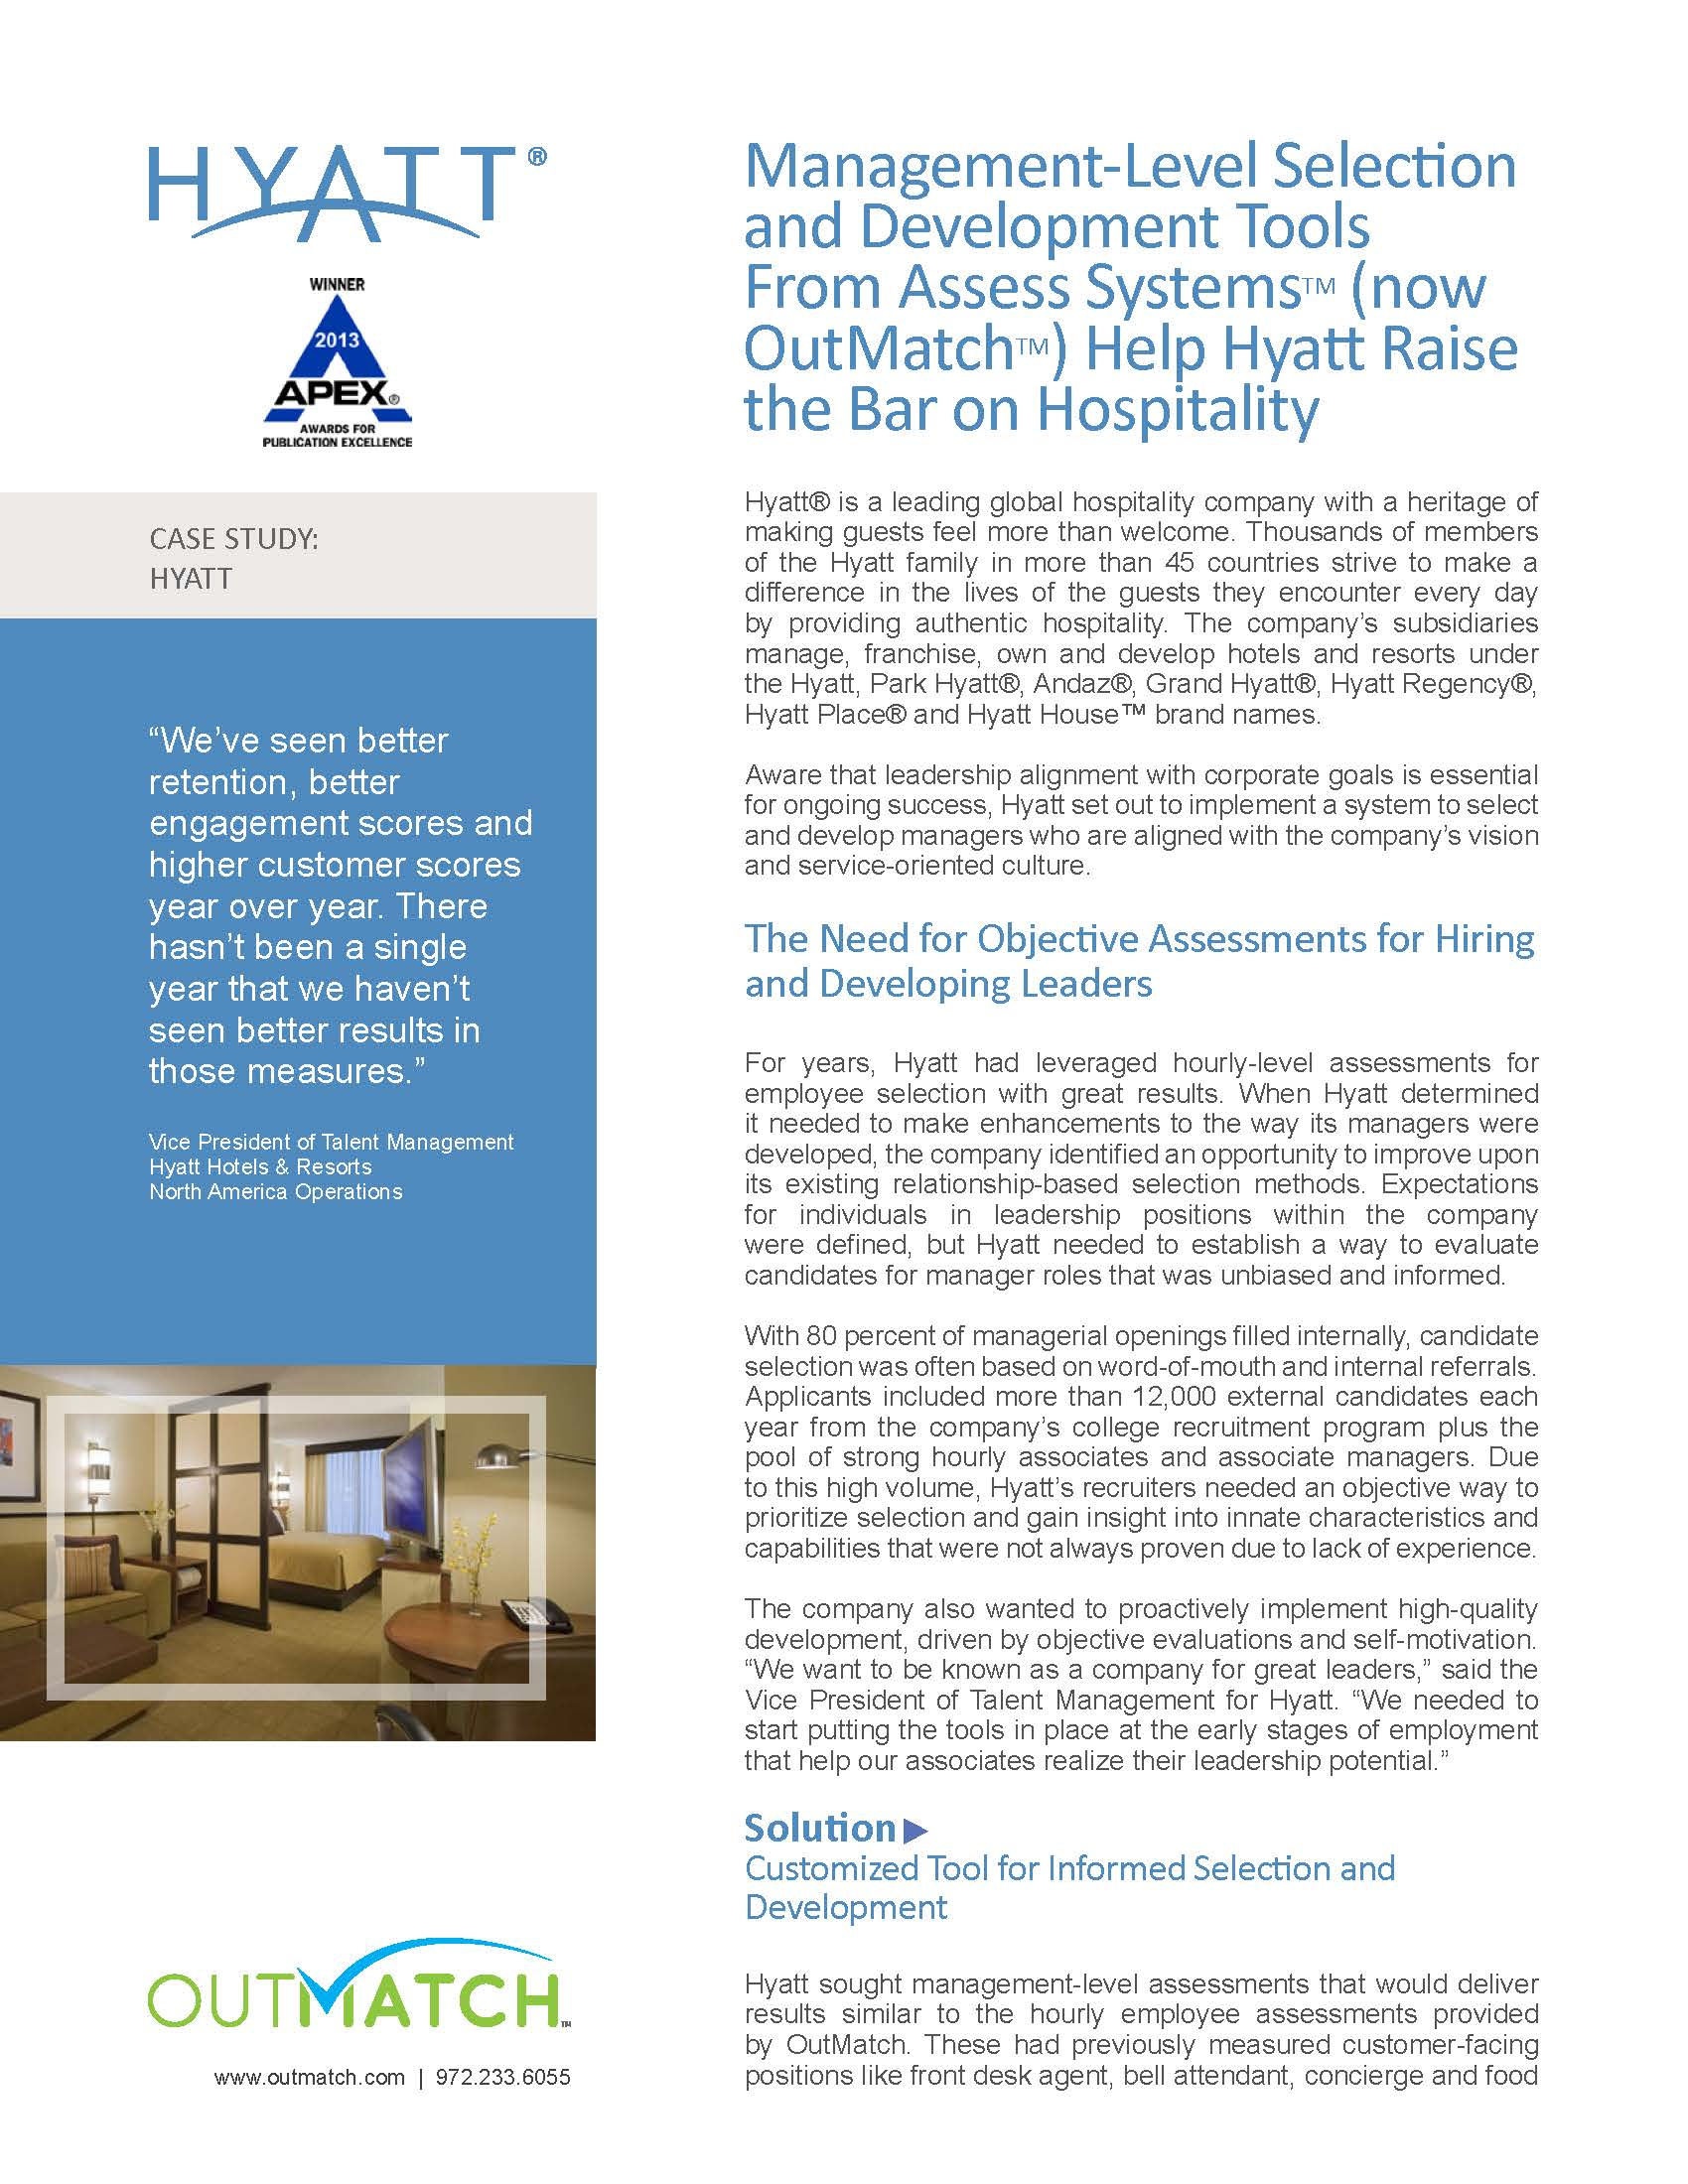 the hyatt curacao operational and development strategies essay